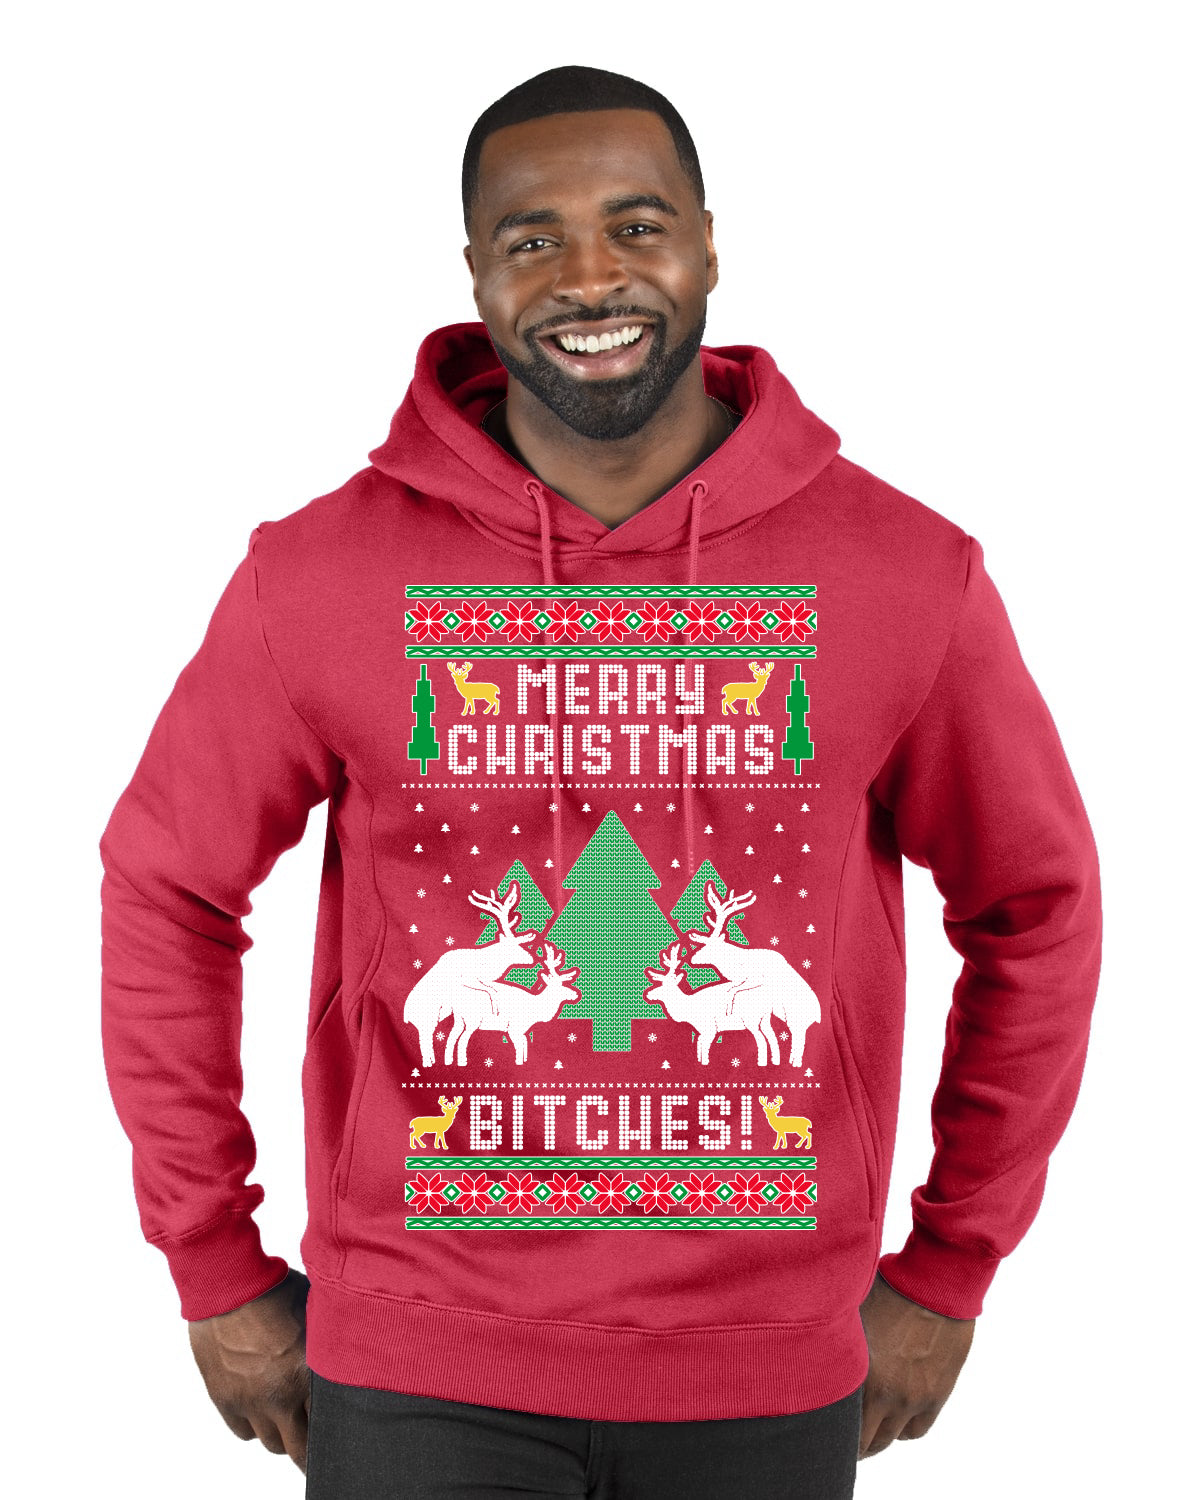 Merry Christmas Bitches Ugly Christmas Sweater Premium Graphic Hoodie Sweatshirt